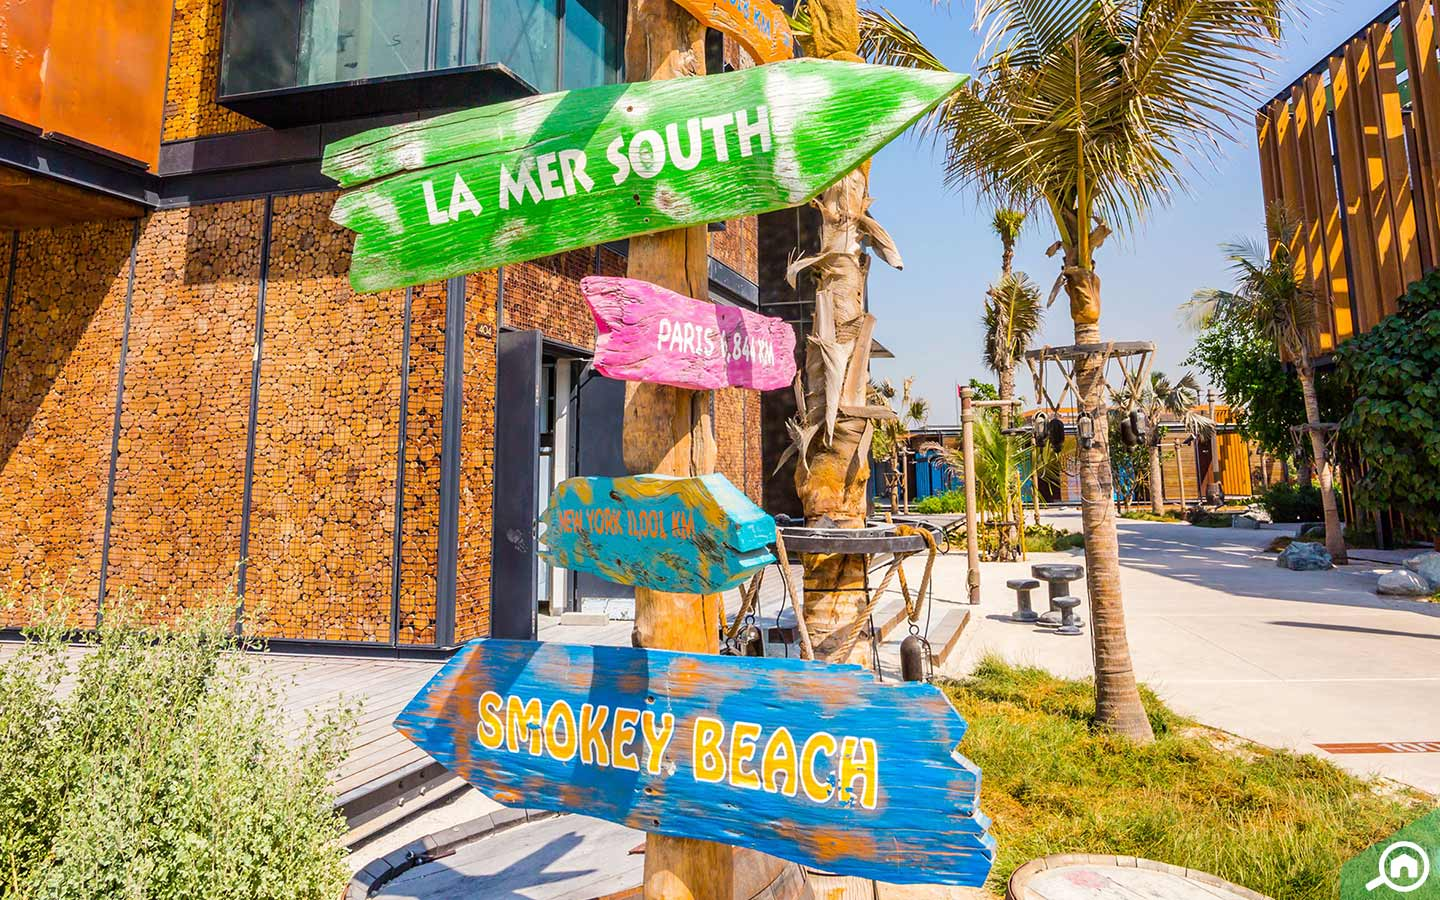 If lying on the beach isn't your thing, there are plenty of shopping and restaurants in La Mer to keep you occupied.